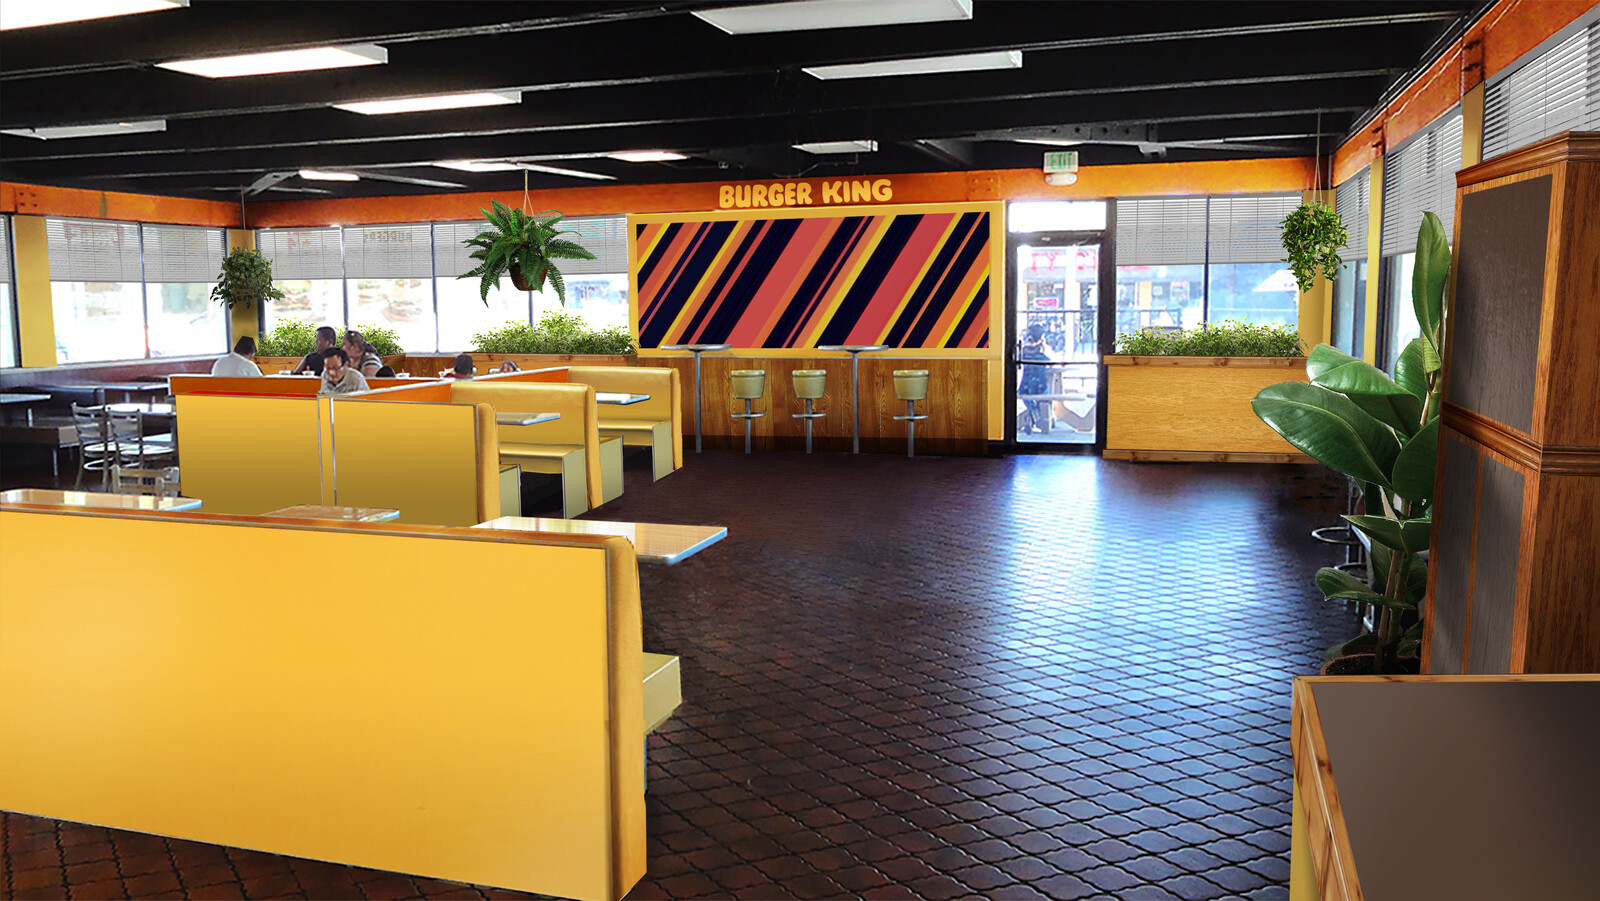 Retro Burger King set design.